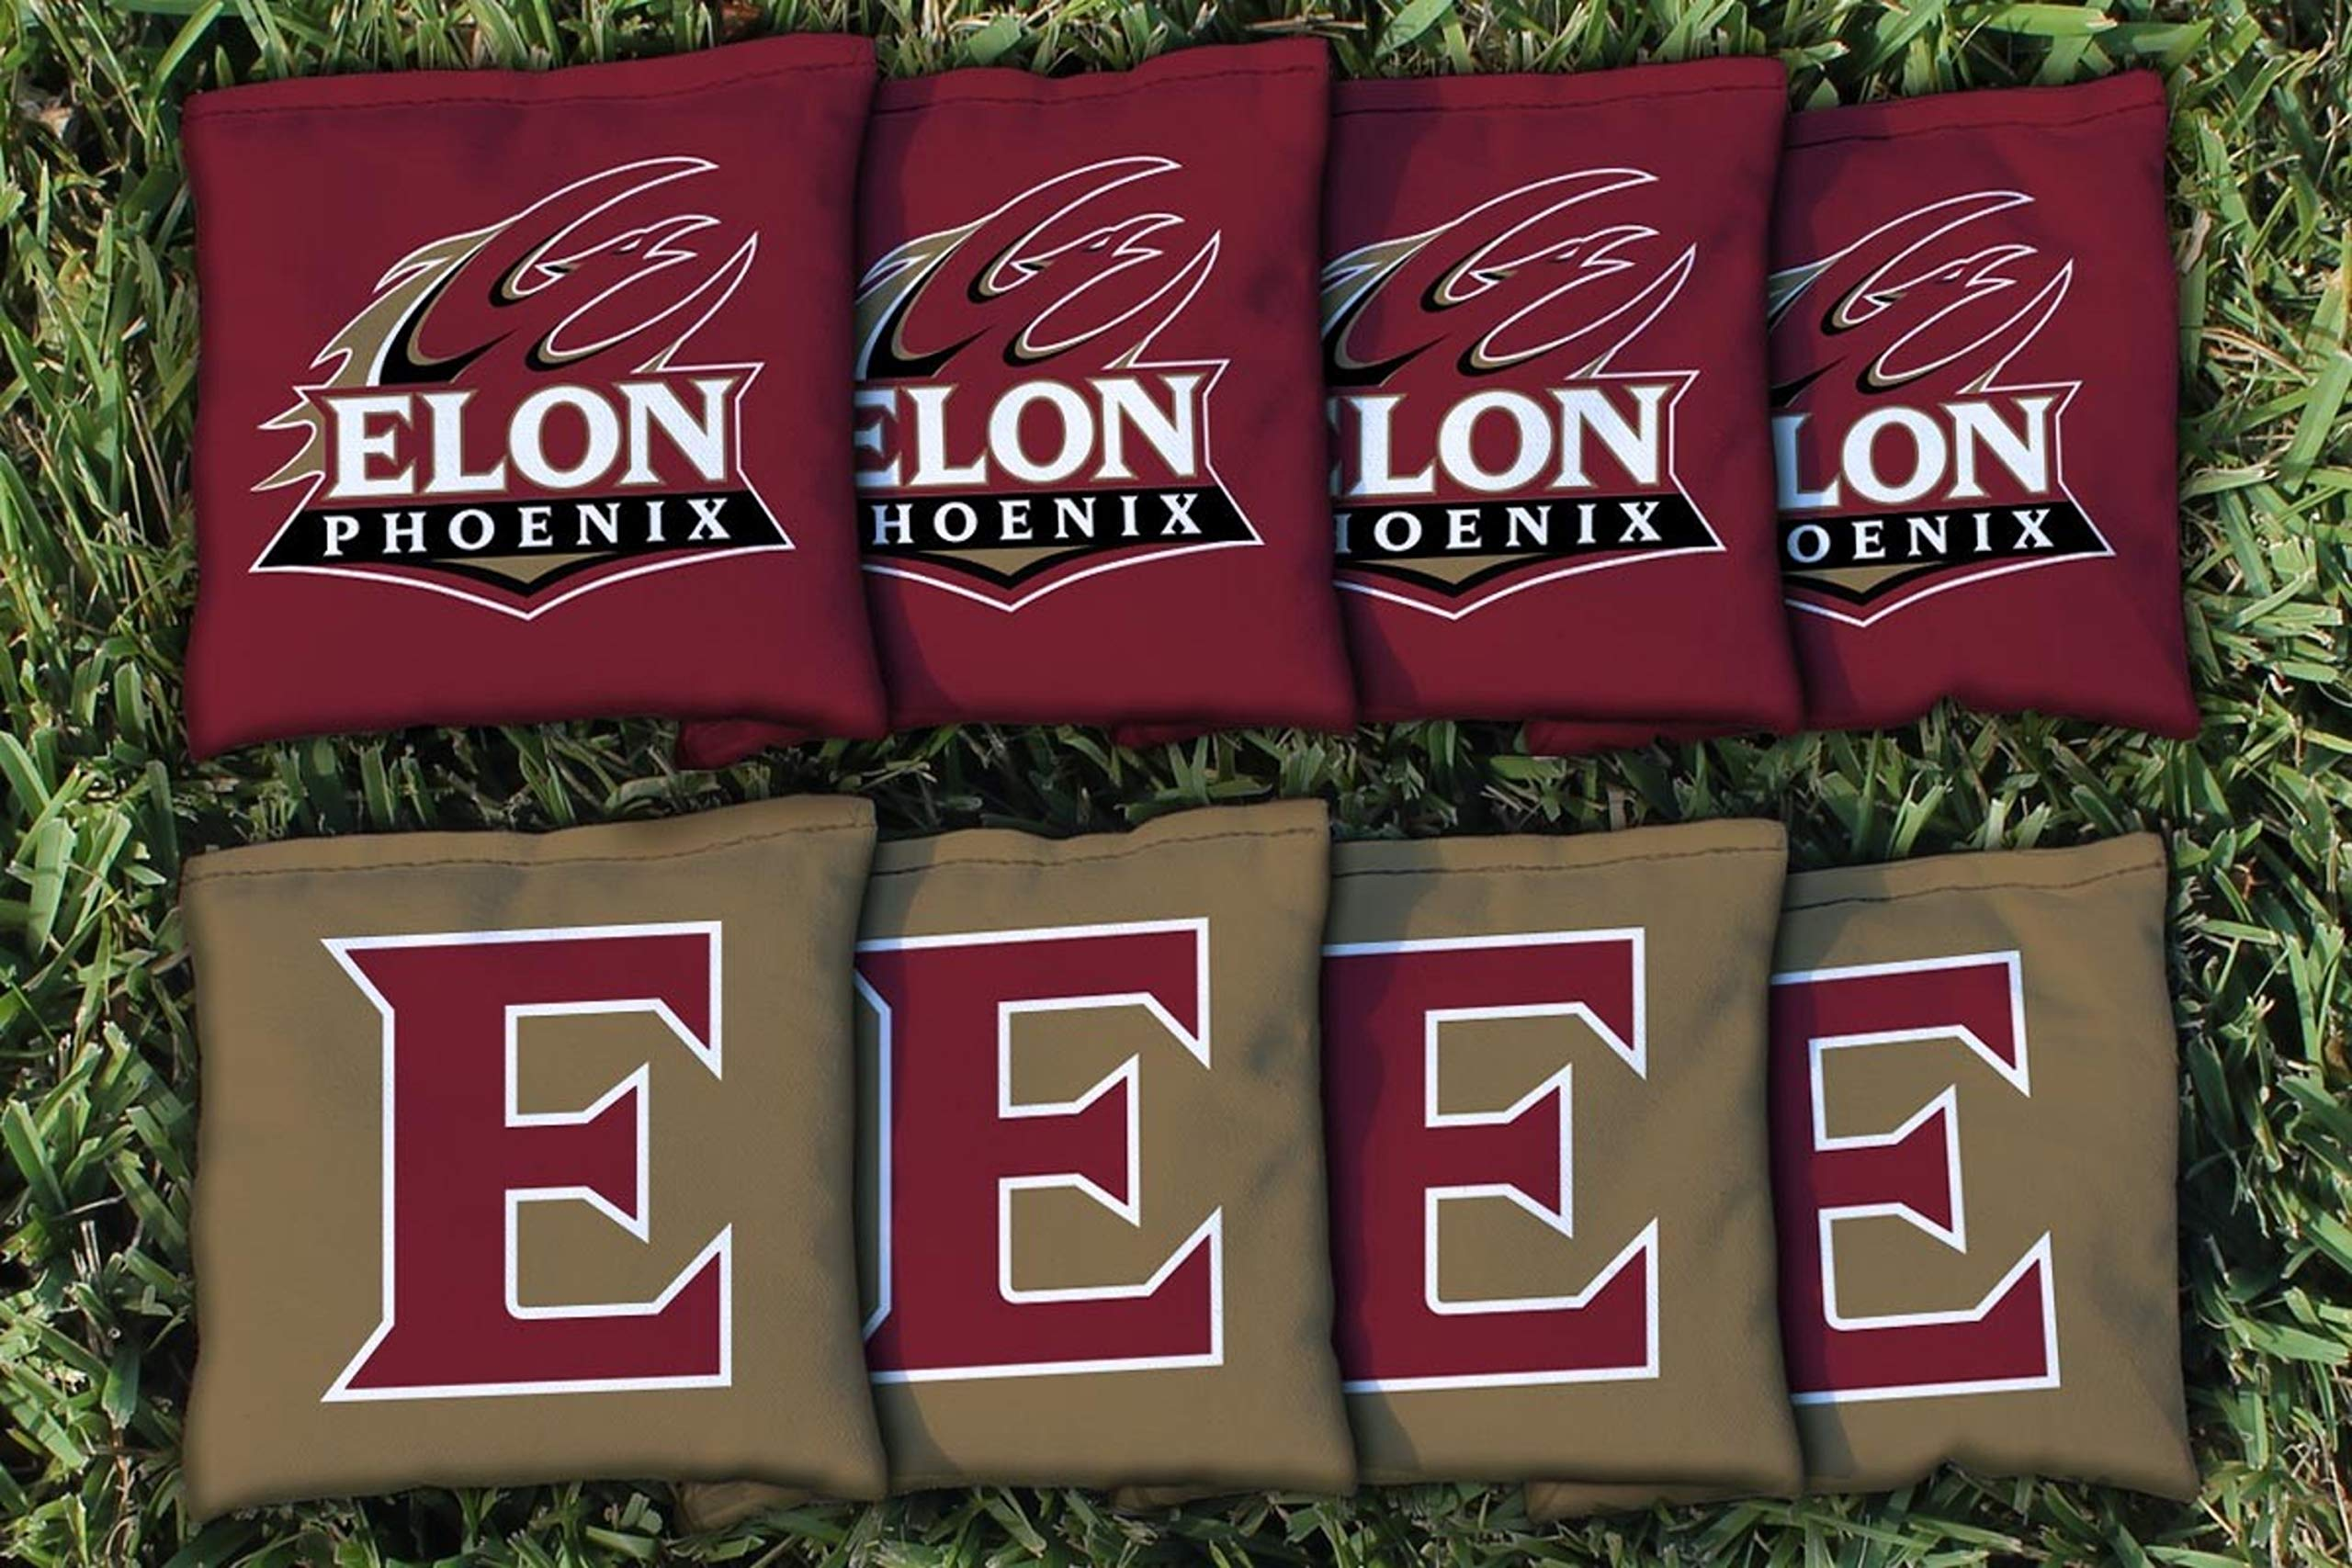 Victory Tailgate NCAA Collegiate Regulation Cornhole Game Bag Set (8 Bags Included, Corn-Filled) - Elon Phoenix by Victory Tailgate